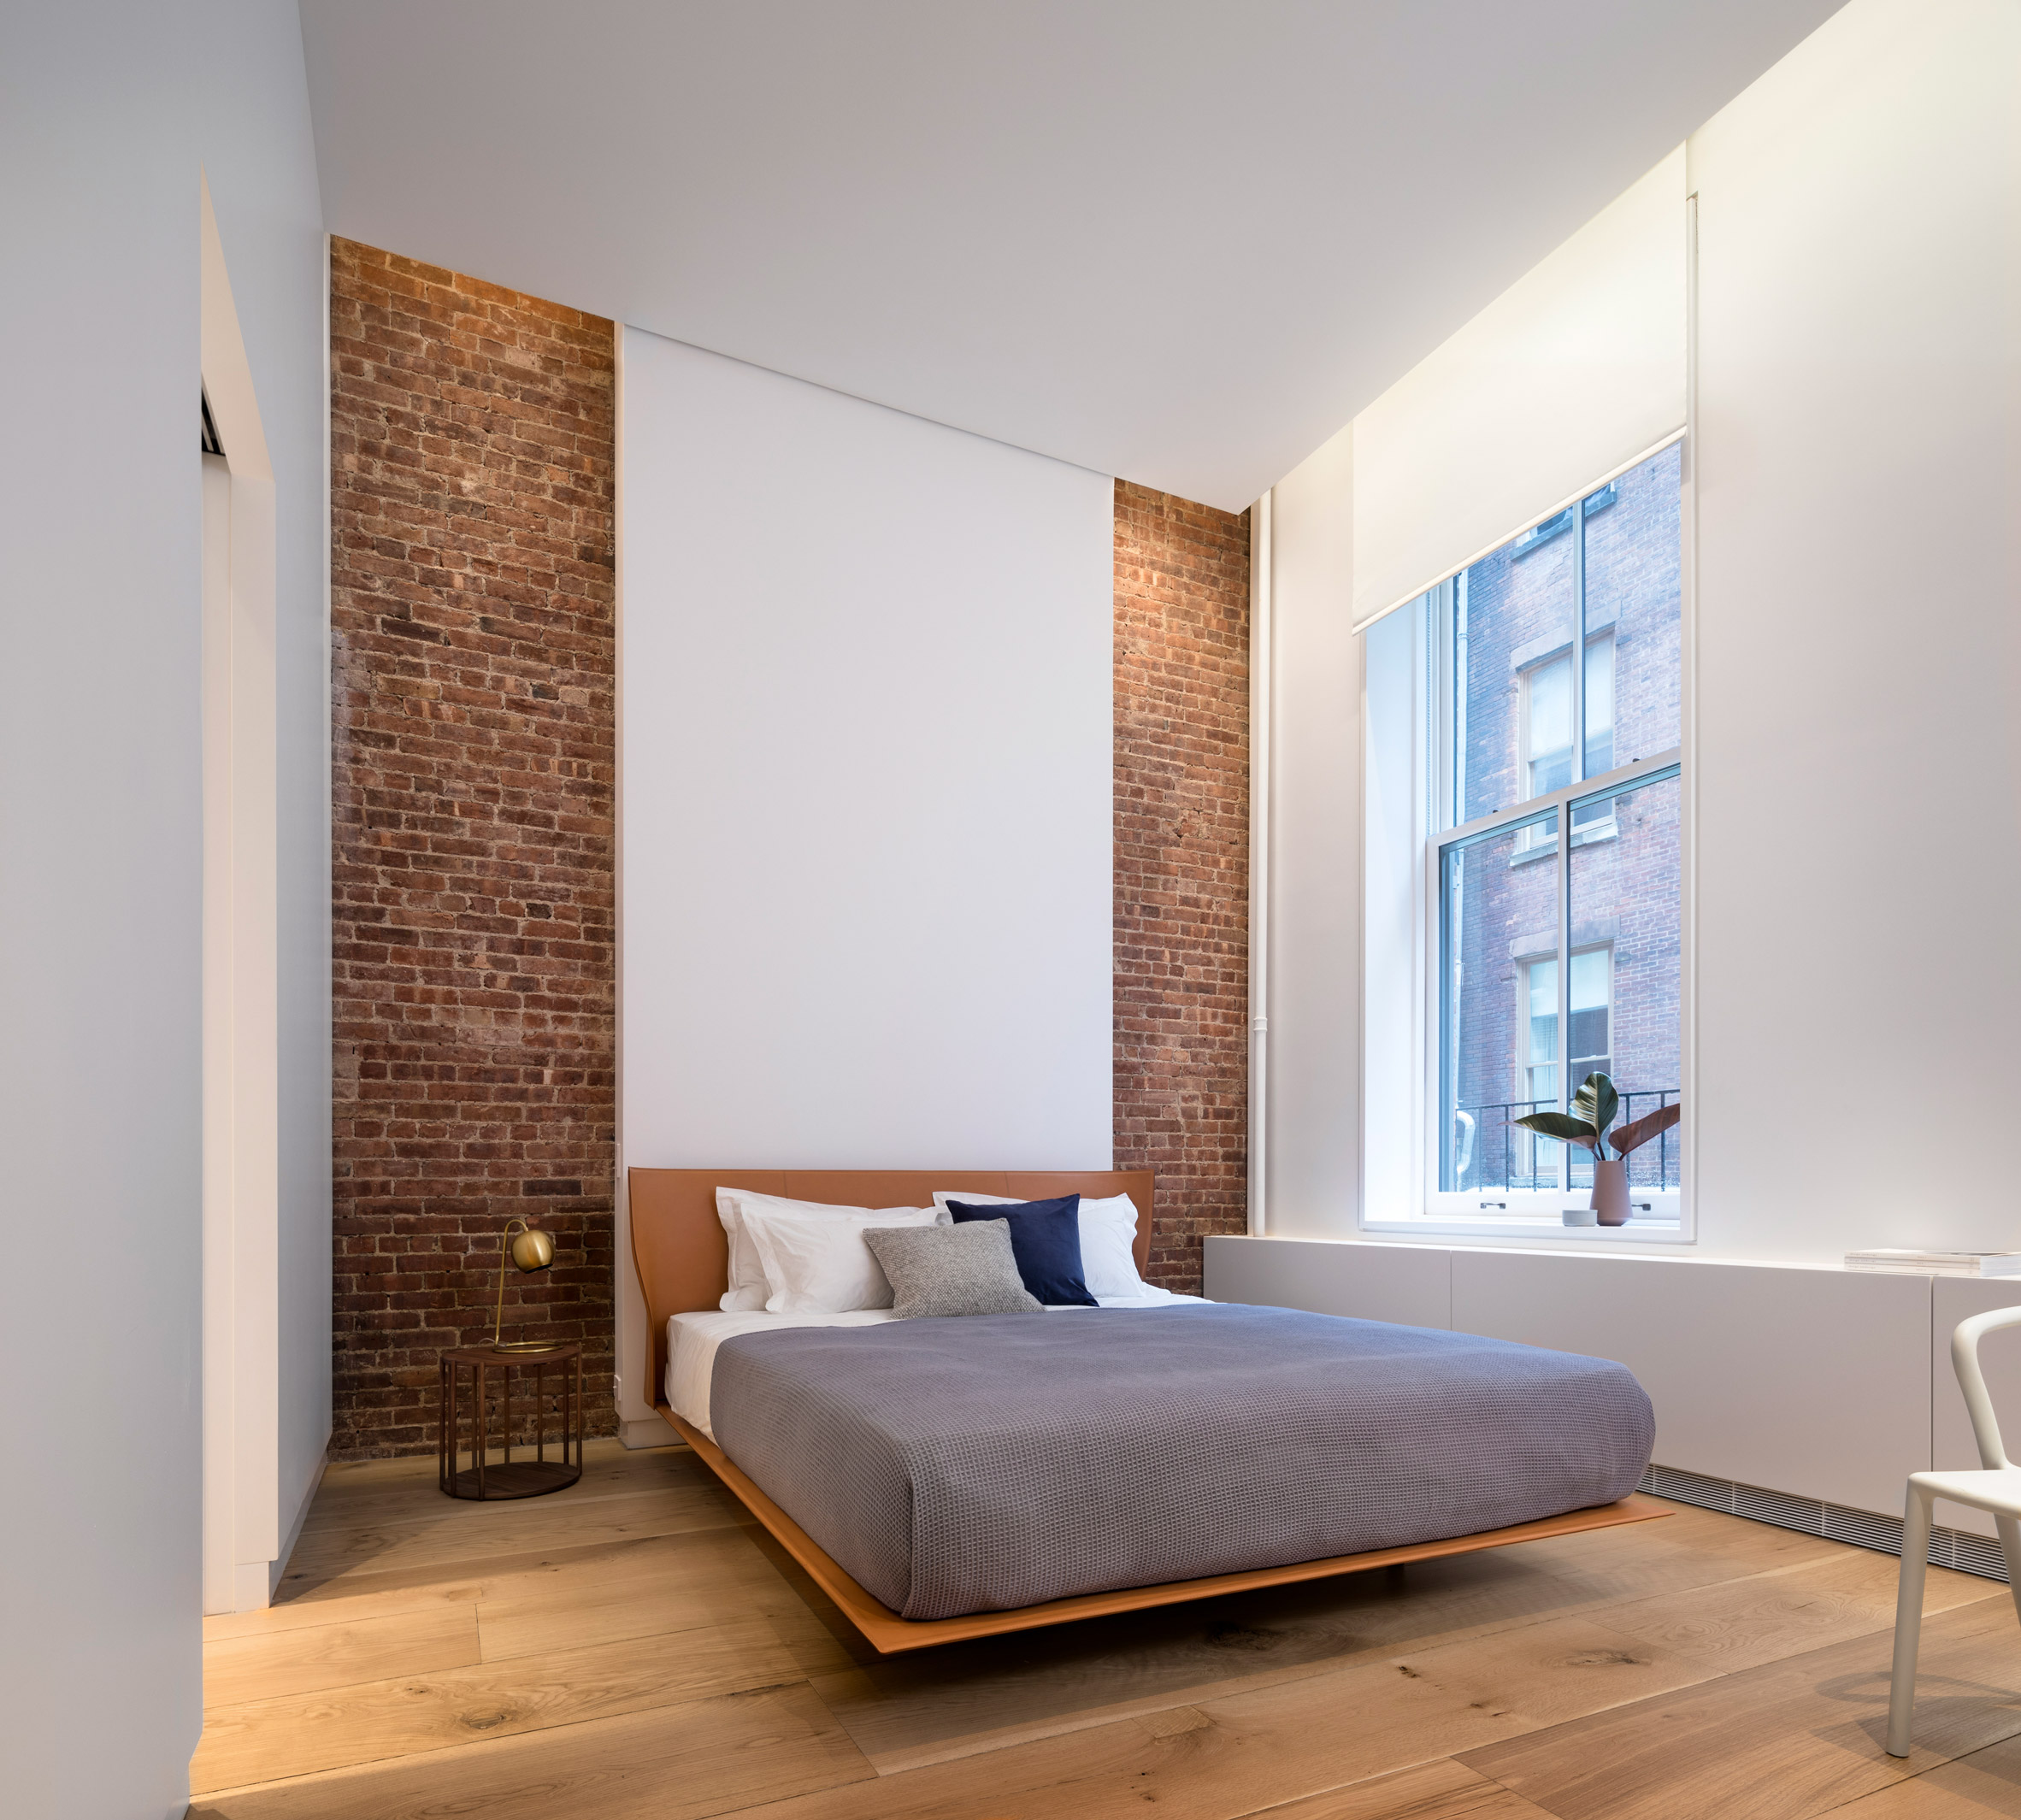 BC—OA incorporated brick party walls into the space